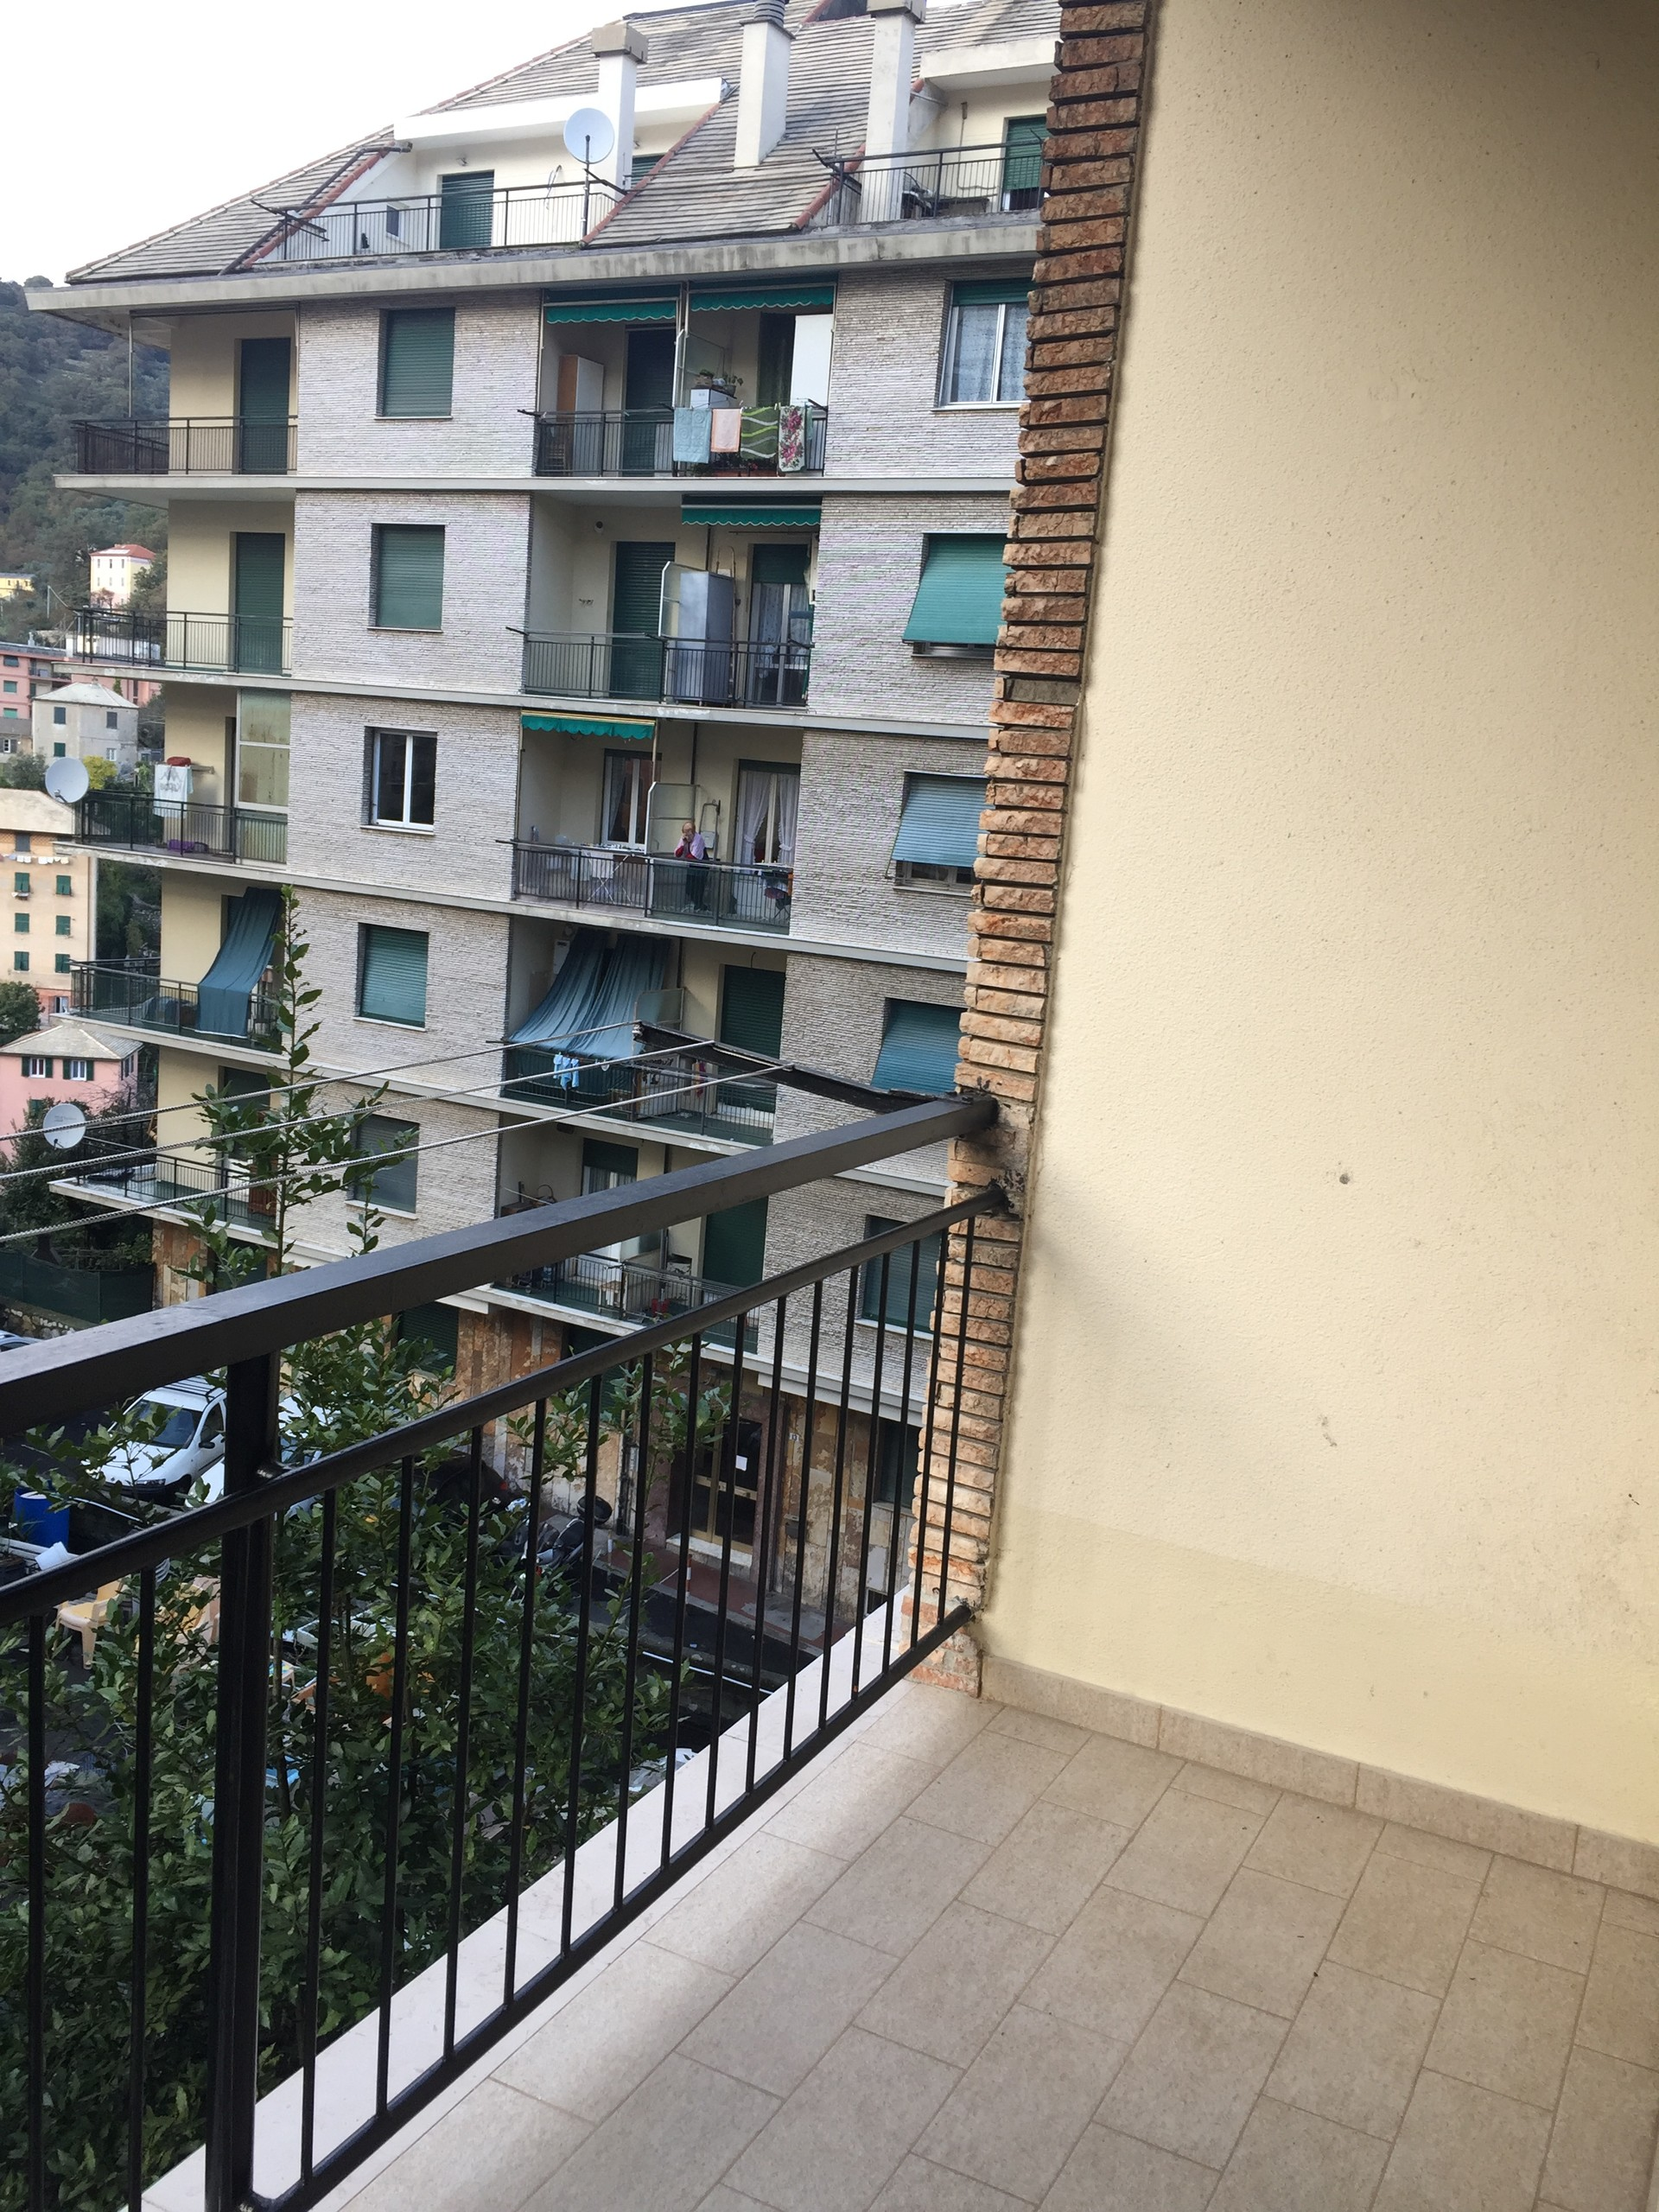 large-sunny-3-bedrooms-apartment-students-close-center-aaa289036646cd6c96a4af330d51171a